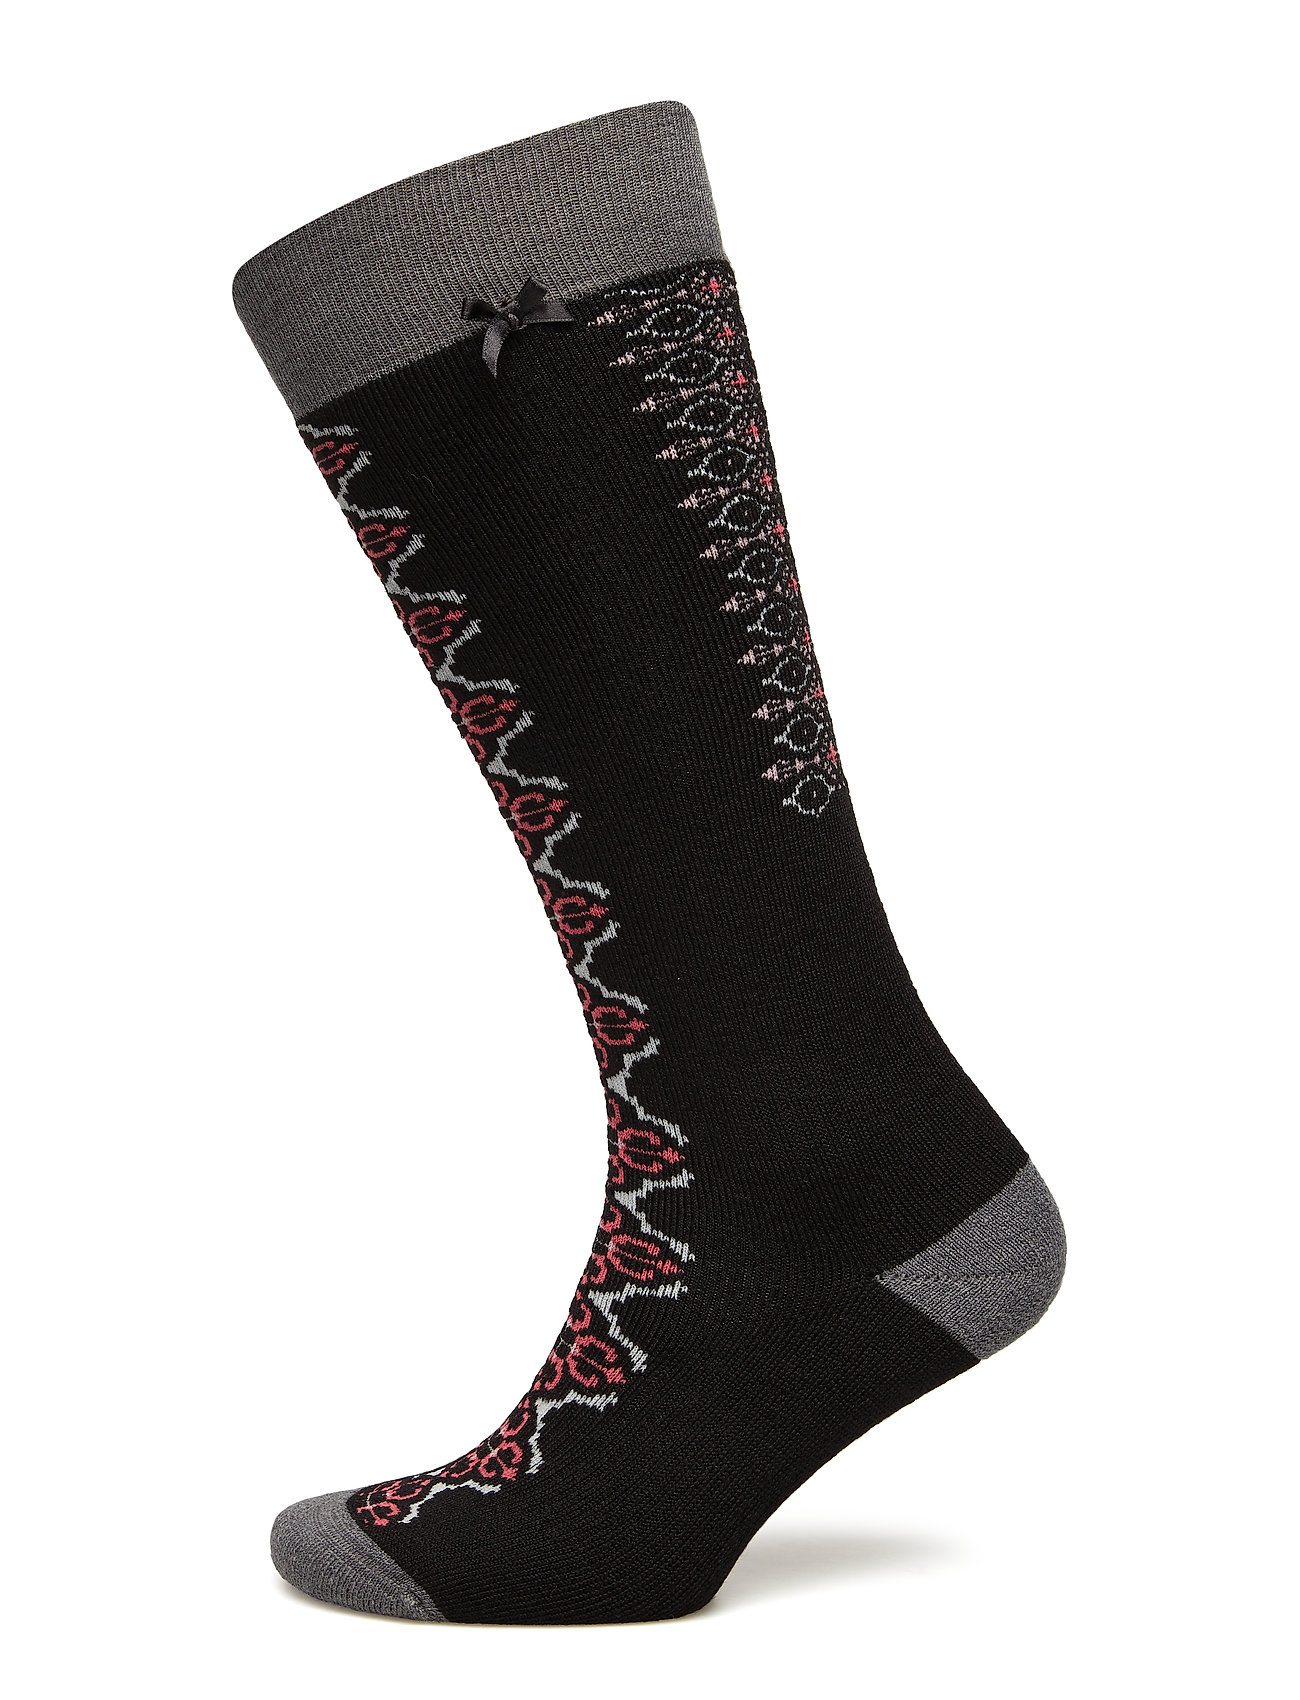 ODD MOLLY ACTIVE WEAR deep snow sock